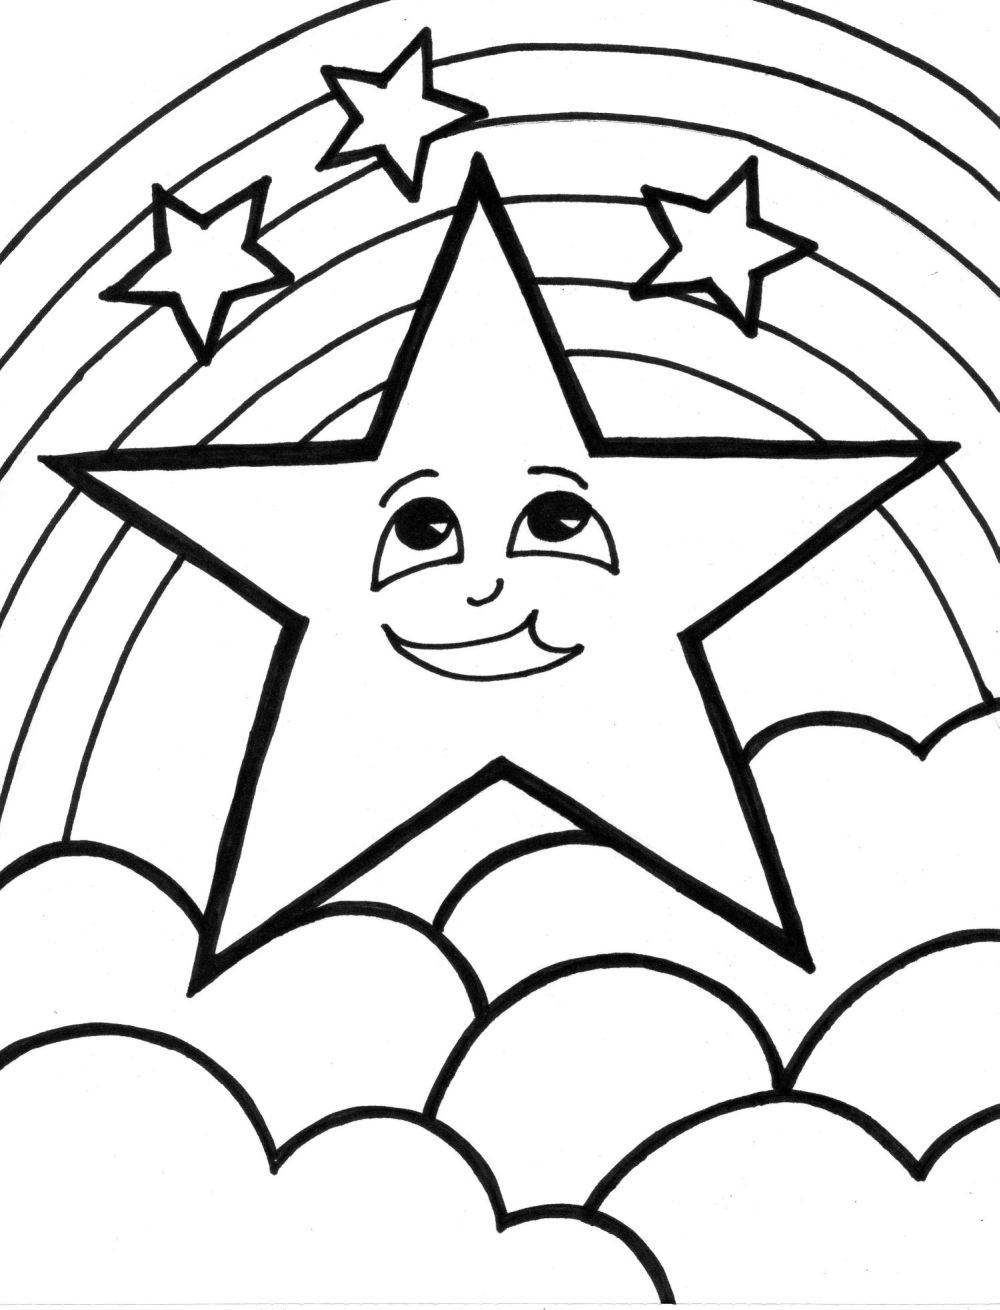 colouring pages stars star coloring pages for childrens printable for free pages stars colouring 1 1